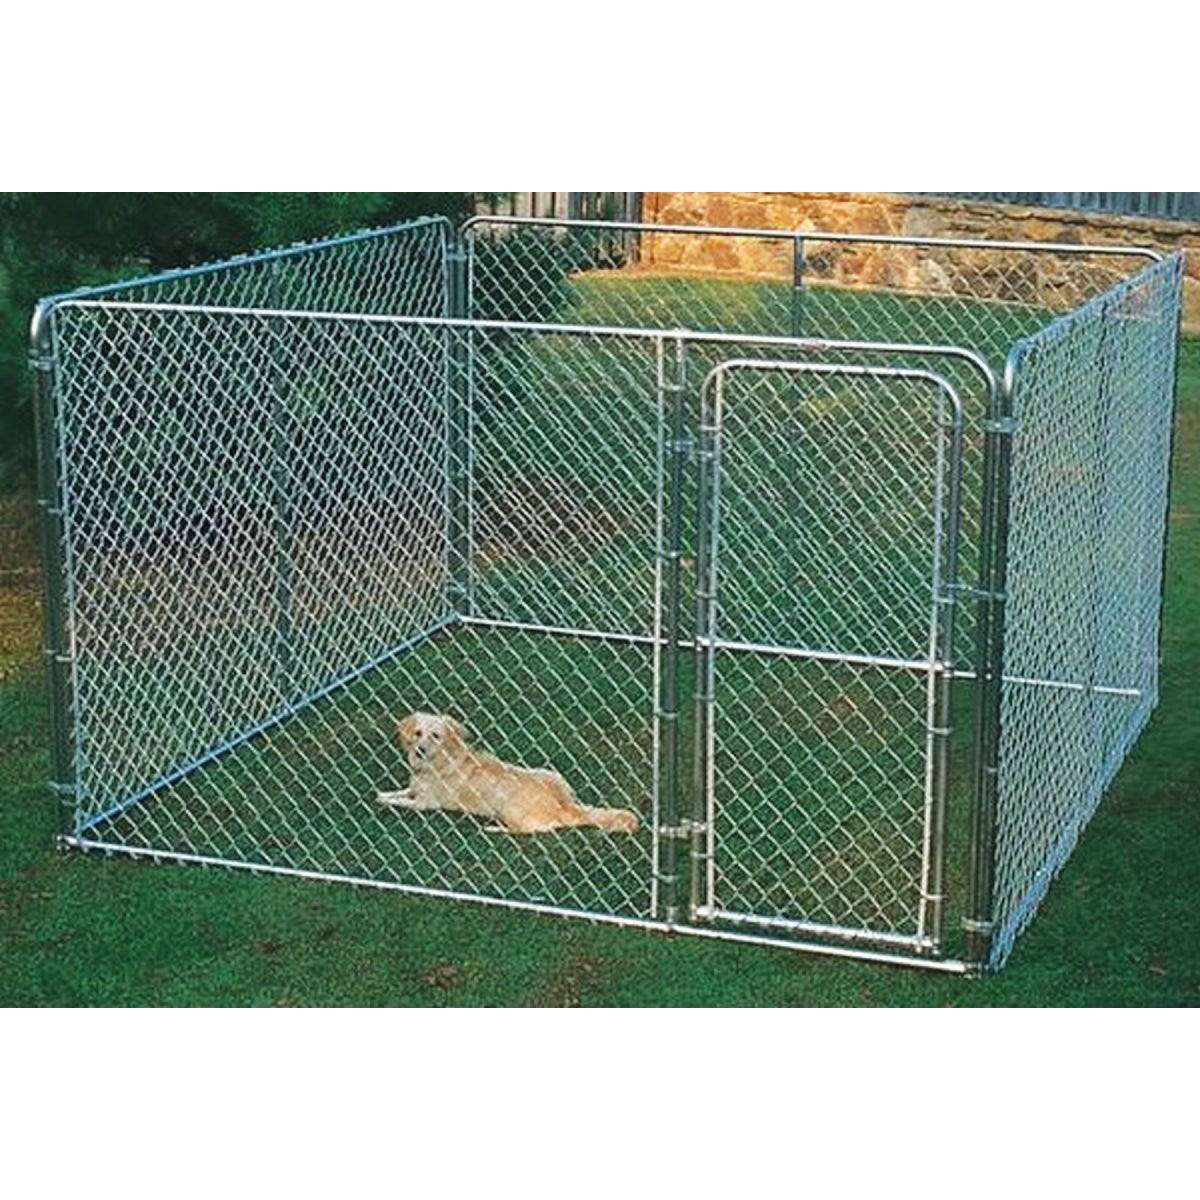 10X10X6 KENNEL - 441006P by Behlen Country